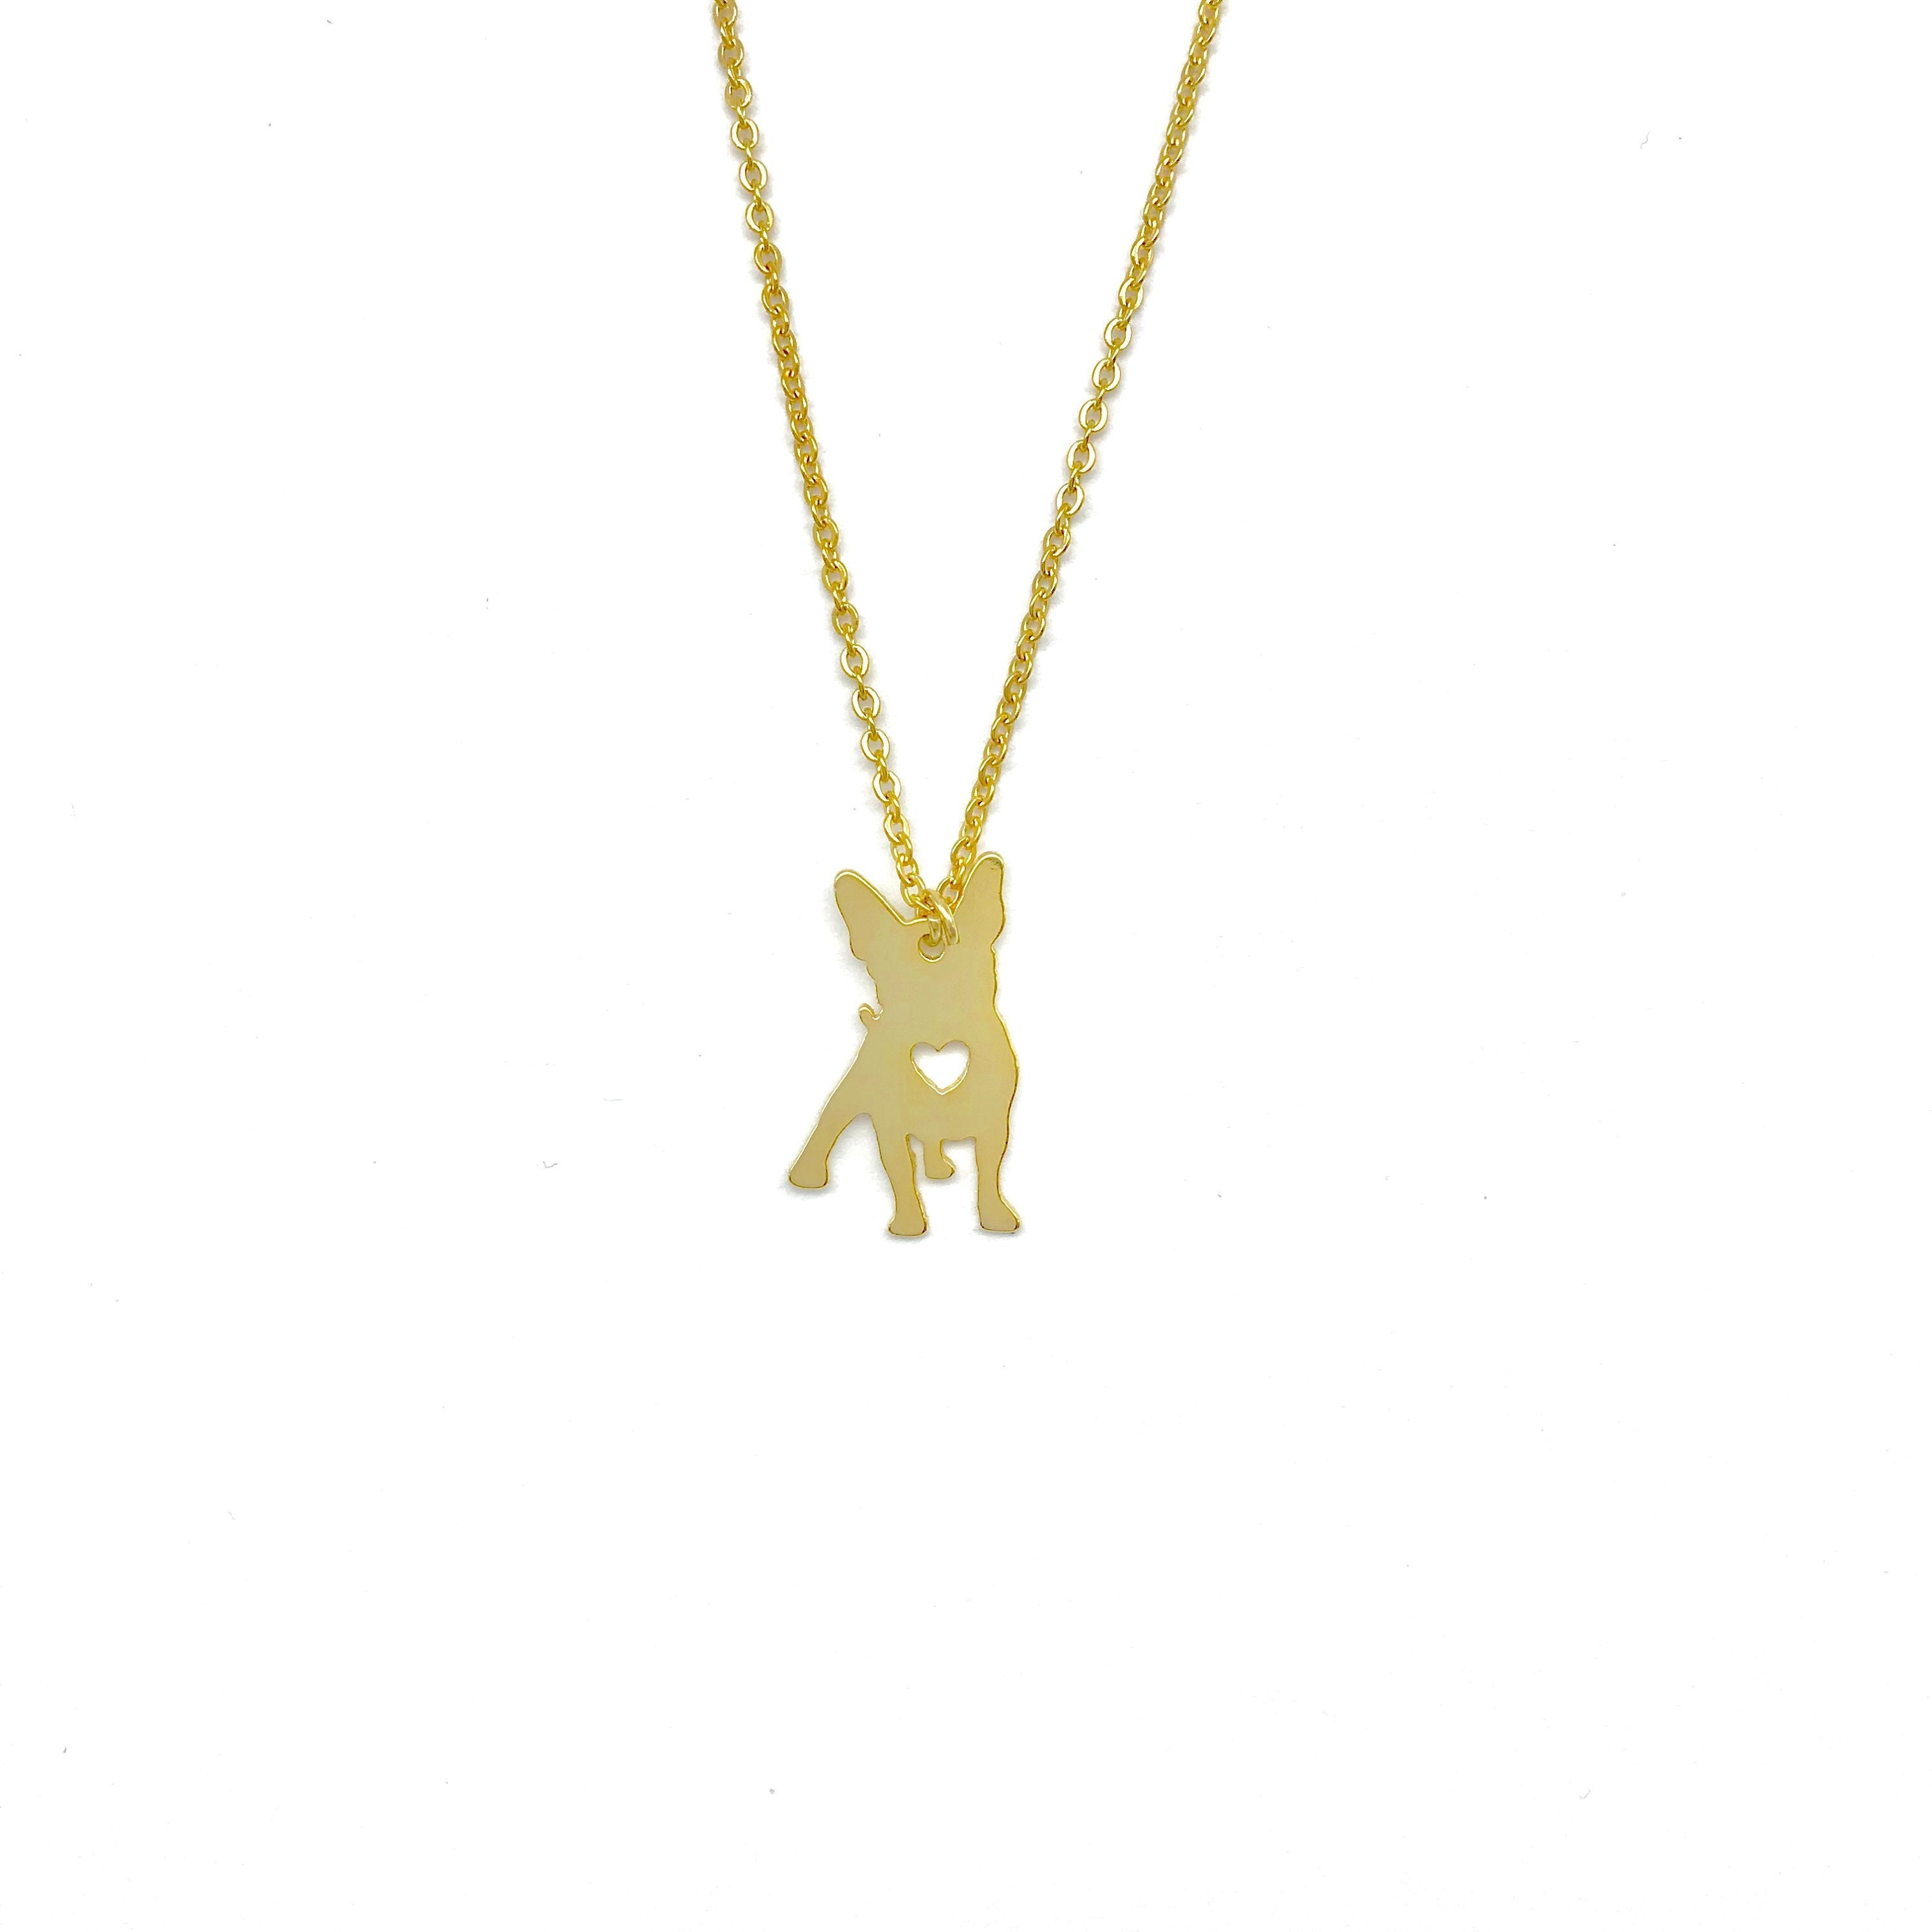 FRENCH BULLDOG NECKLACES